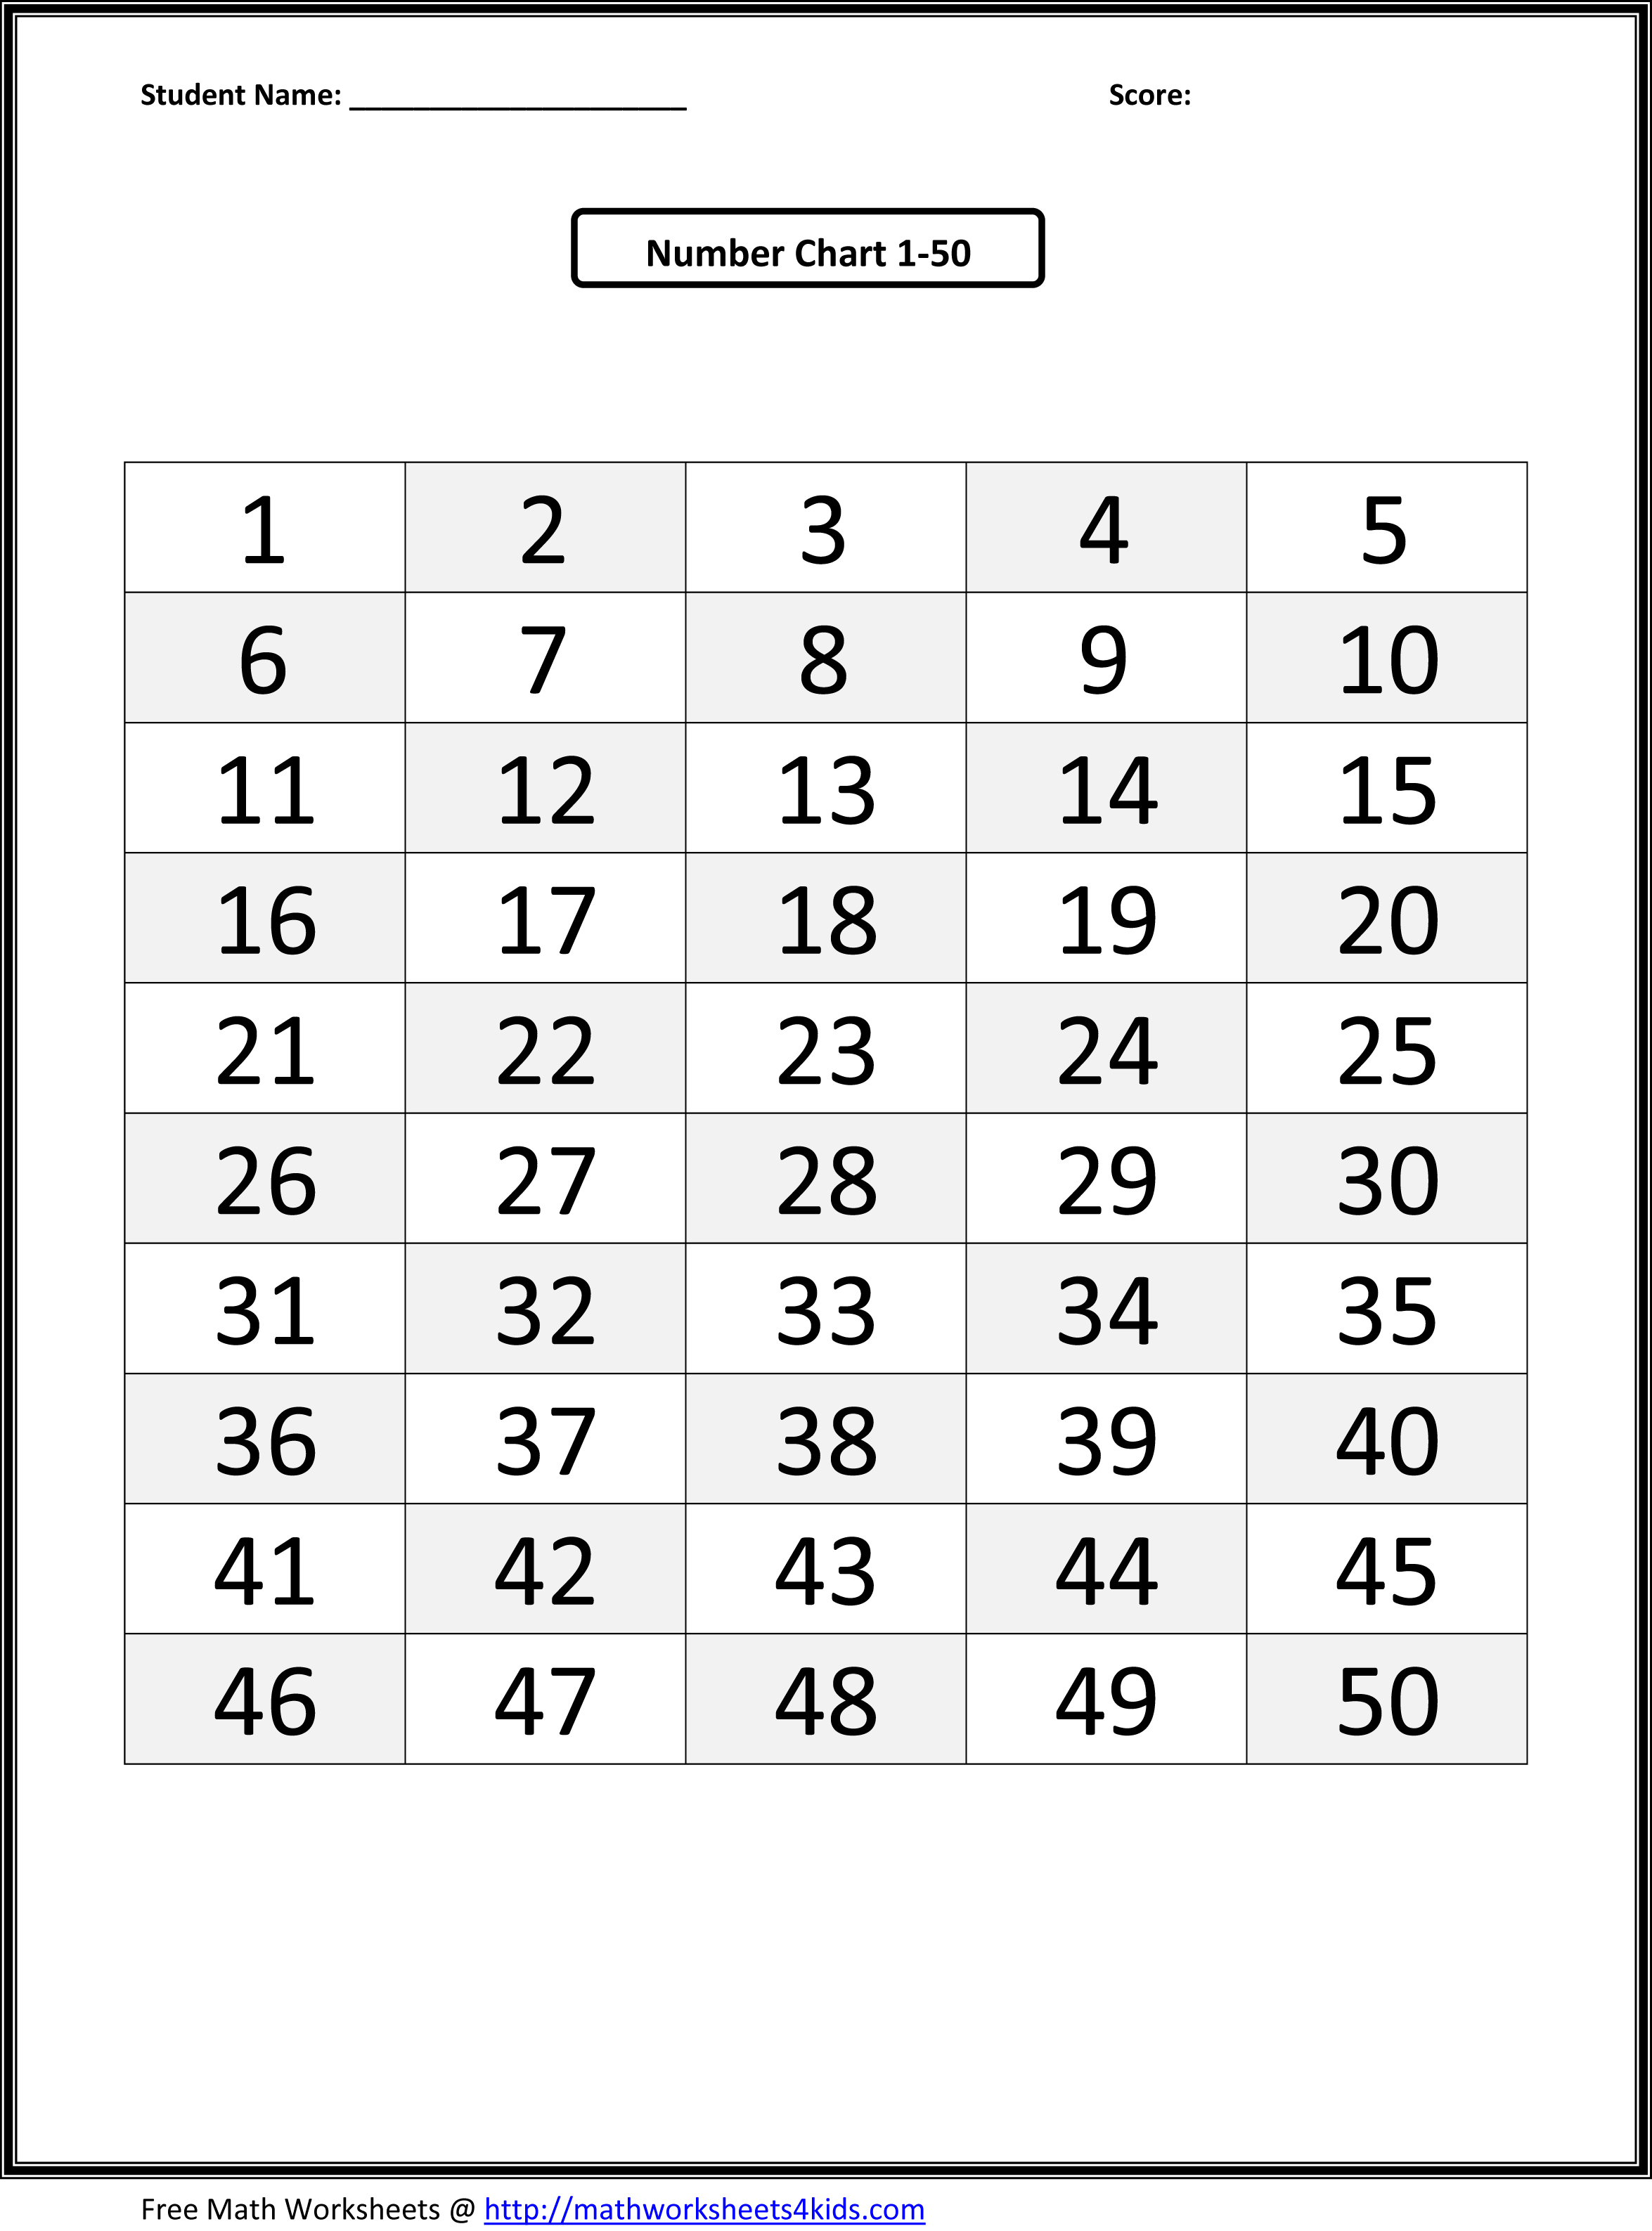 ... the form below to delete this first grade math worksheets image from